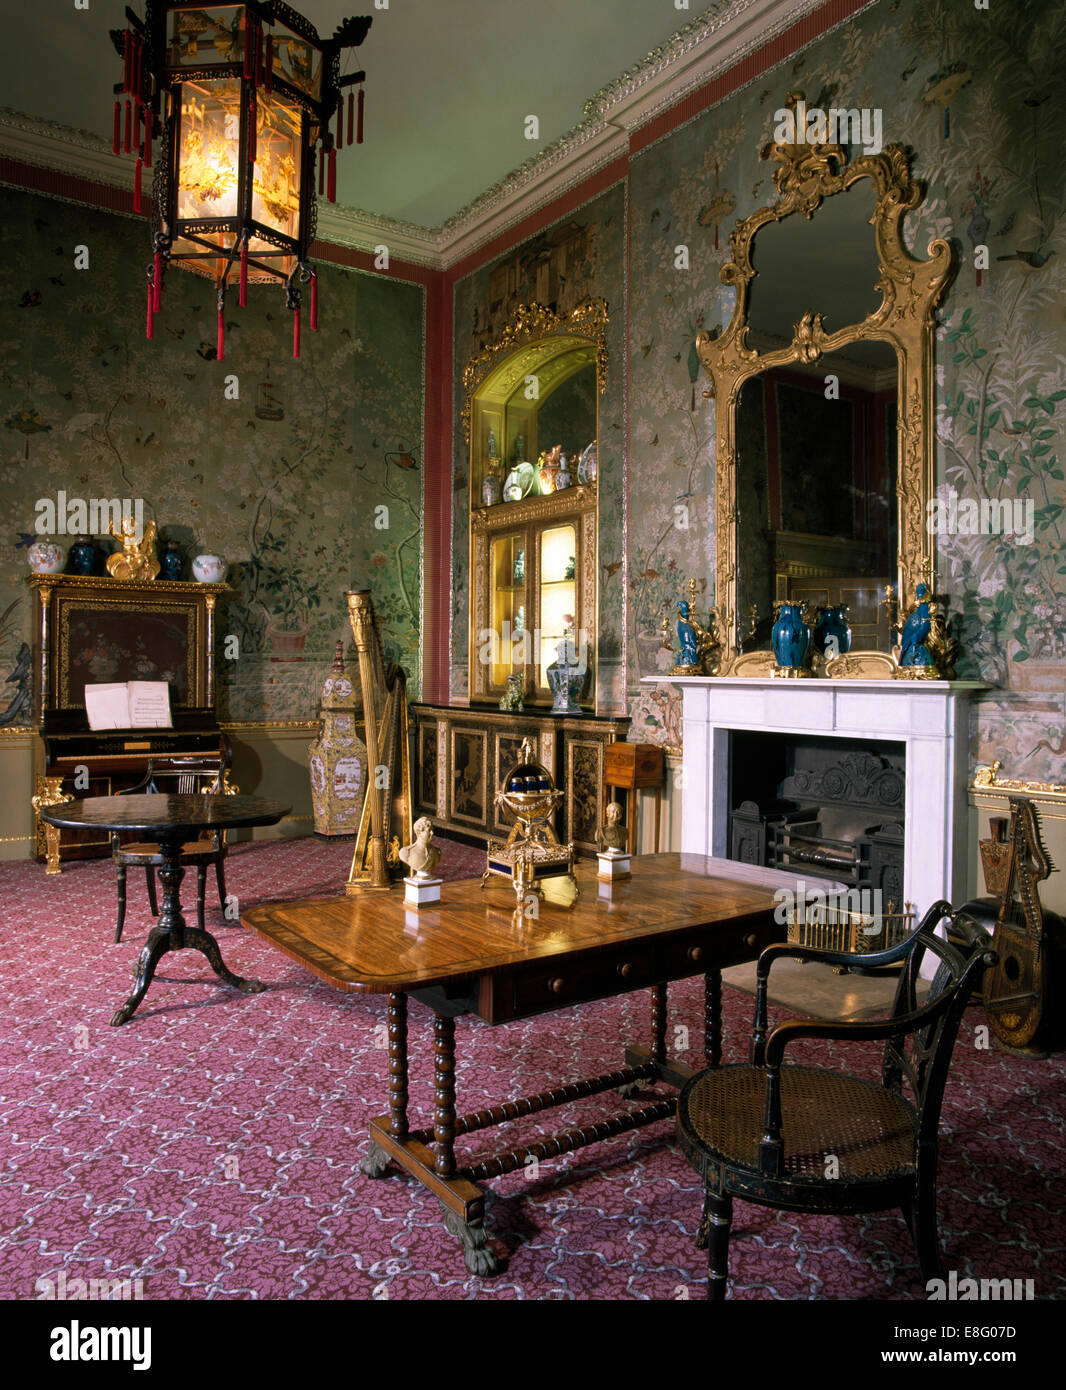 Antique Furniture And Lantern In Old Fashioned Stately